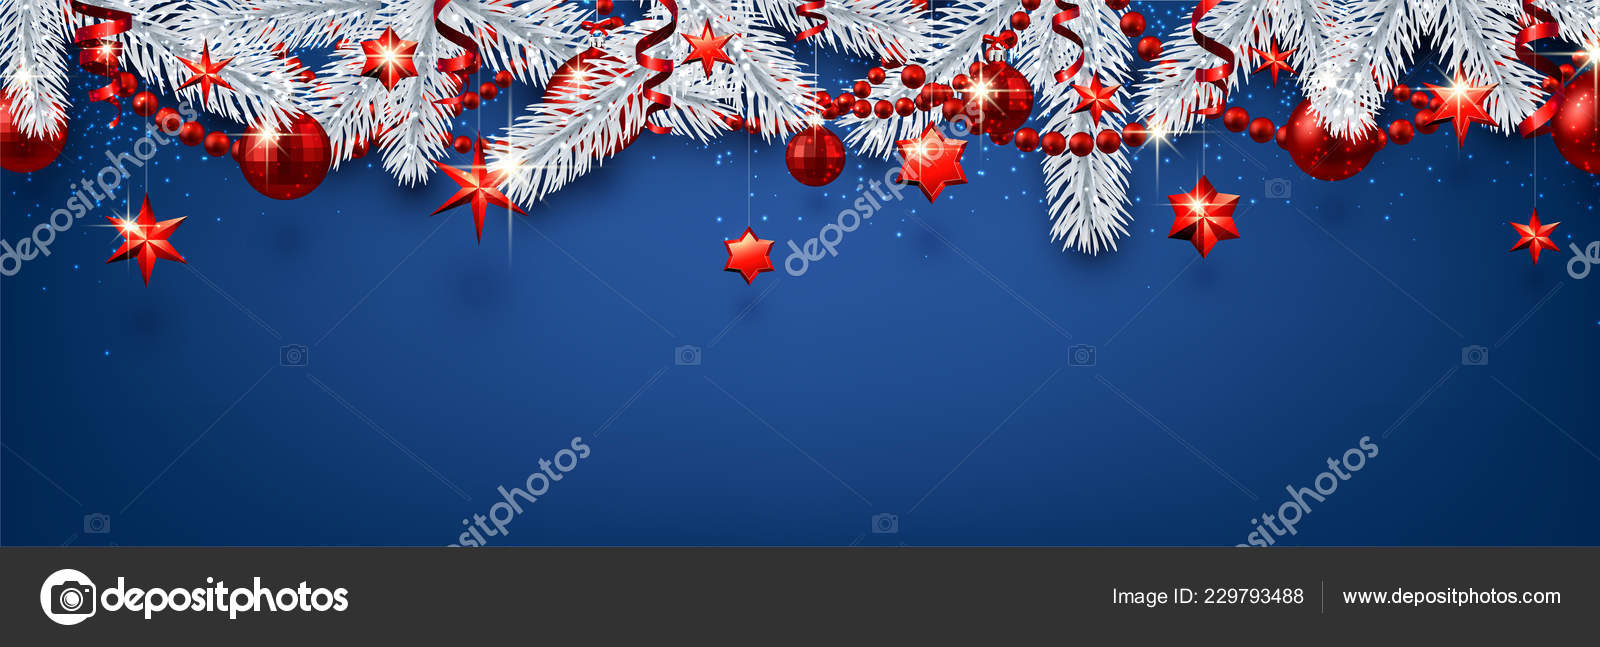 blue christmas and new year banner with silver fir branches and red shiny christmas decorations vector illustration vector by maxborovkov